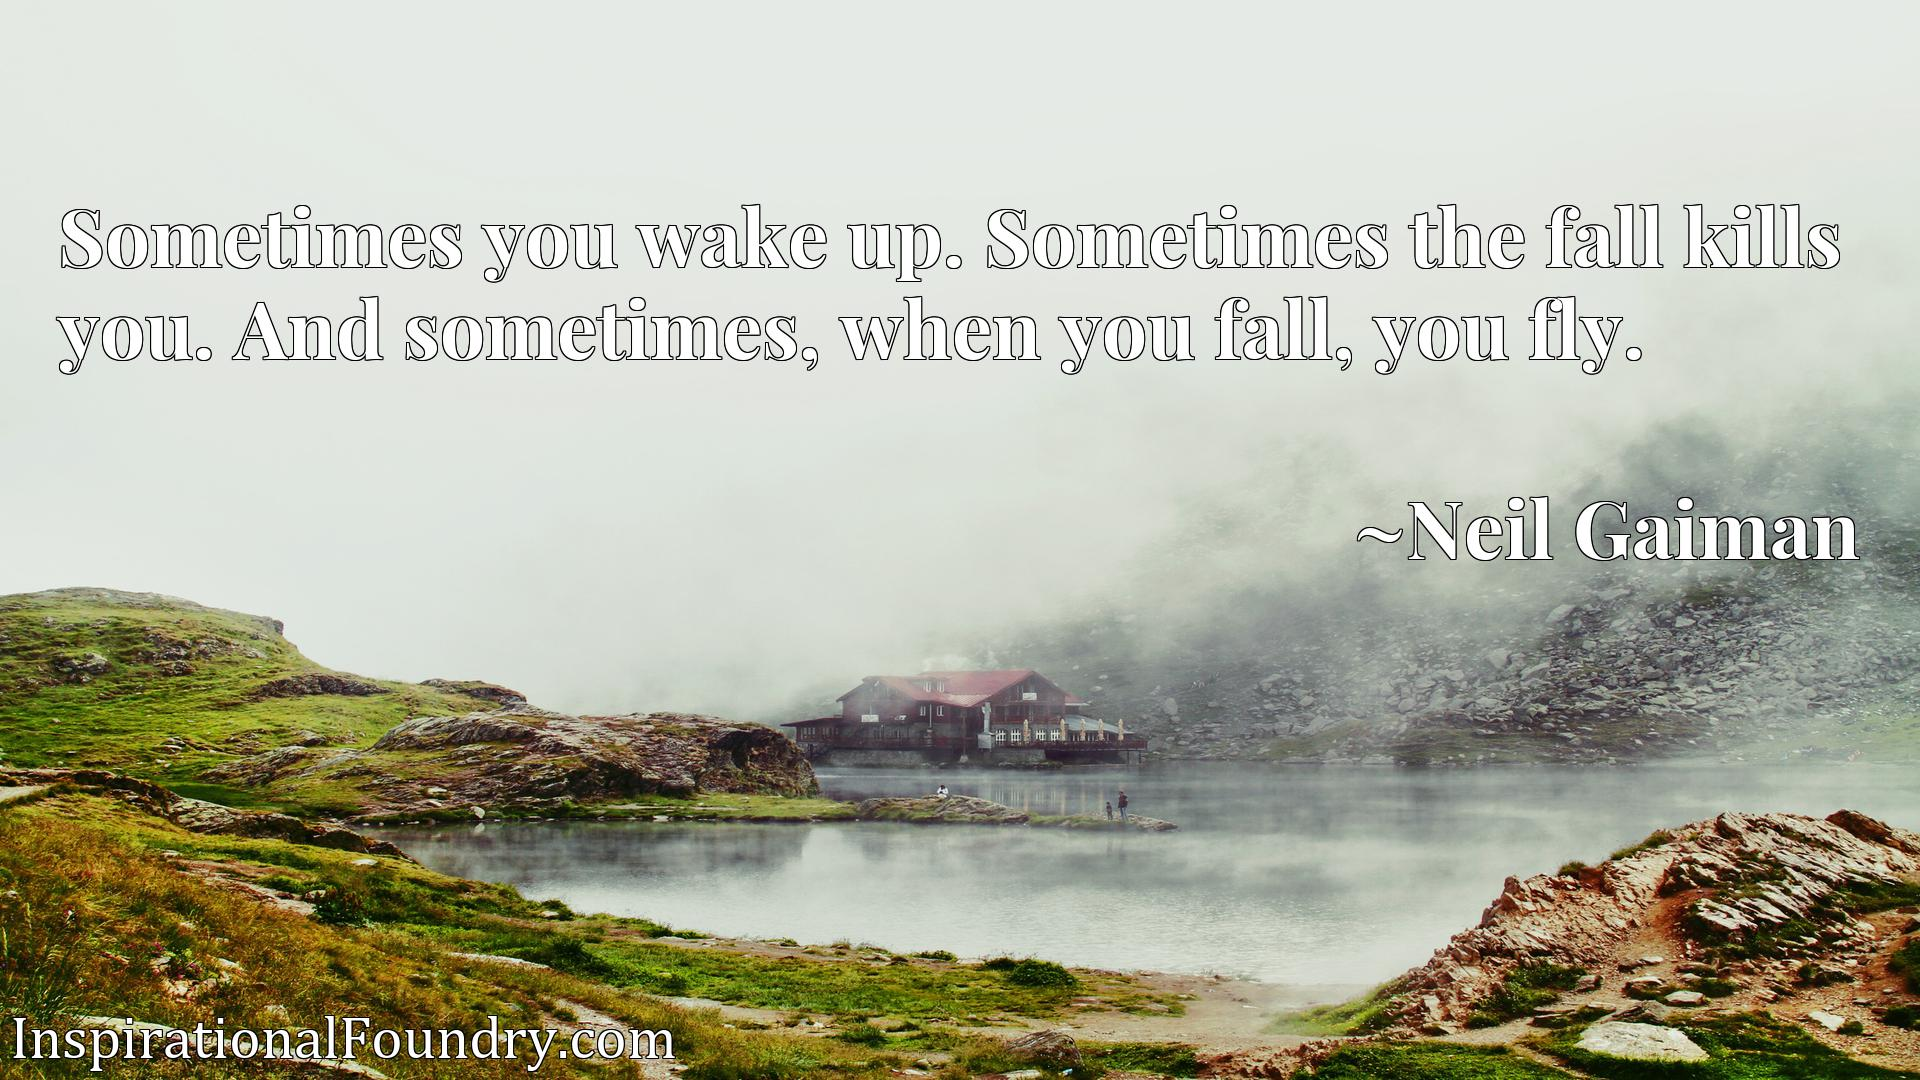 Sometimes you wake up. Sometimes the fall kills you. And sometimes, when you fall, you fly.